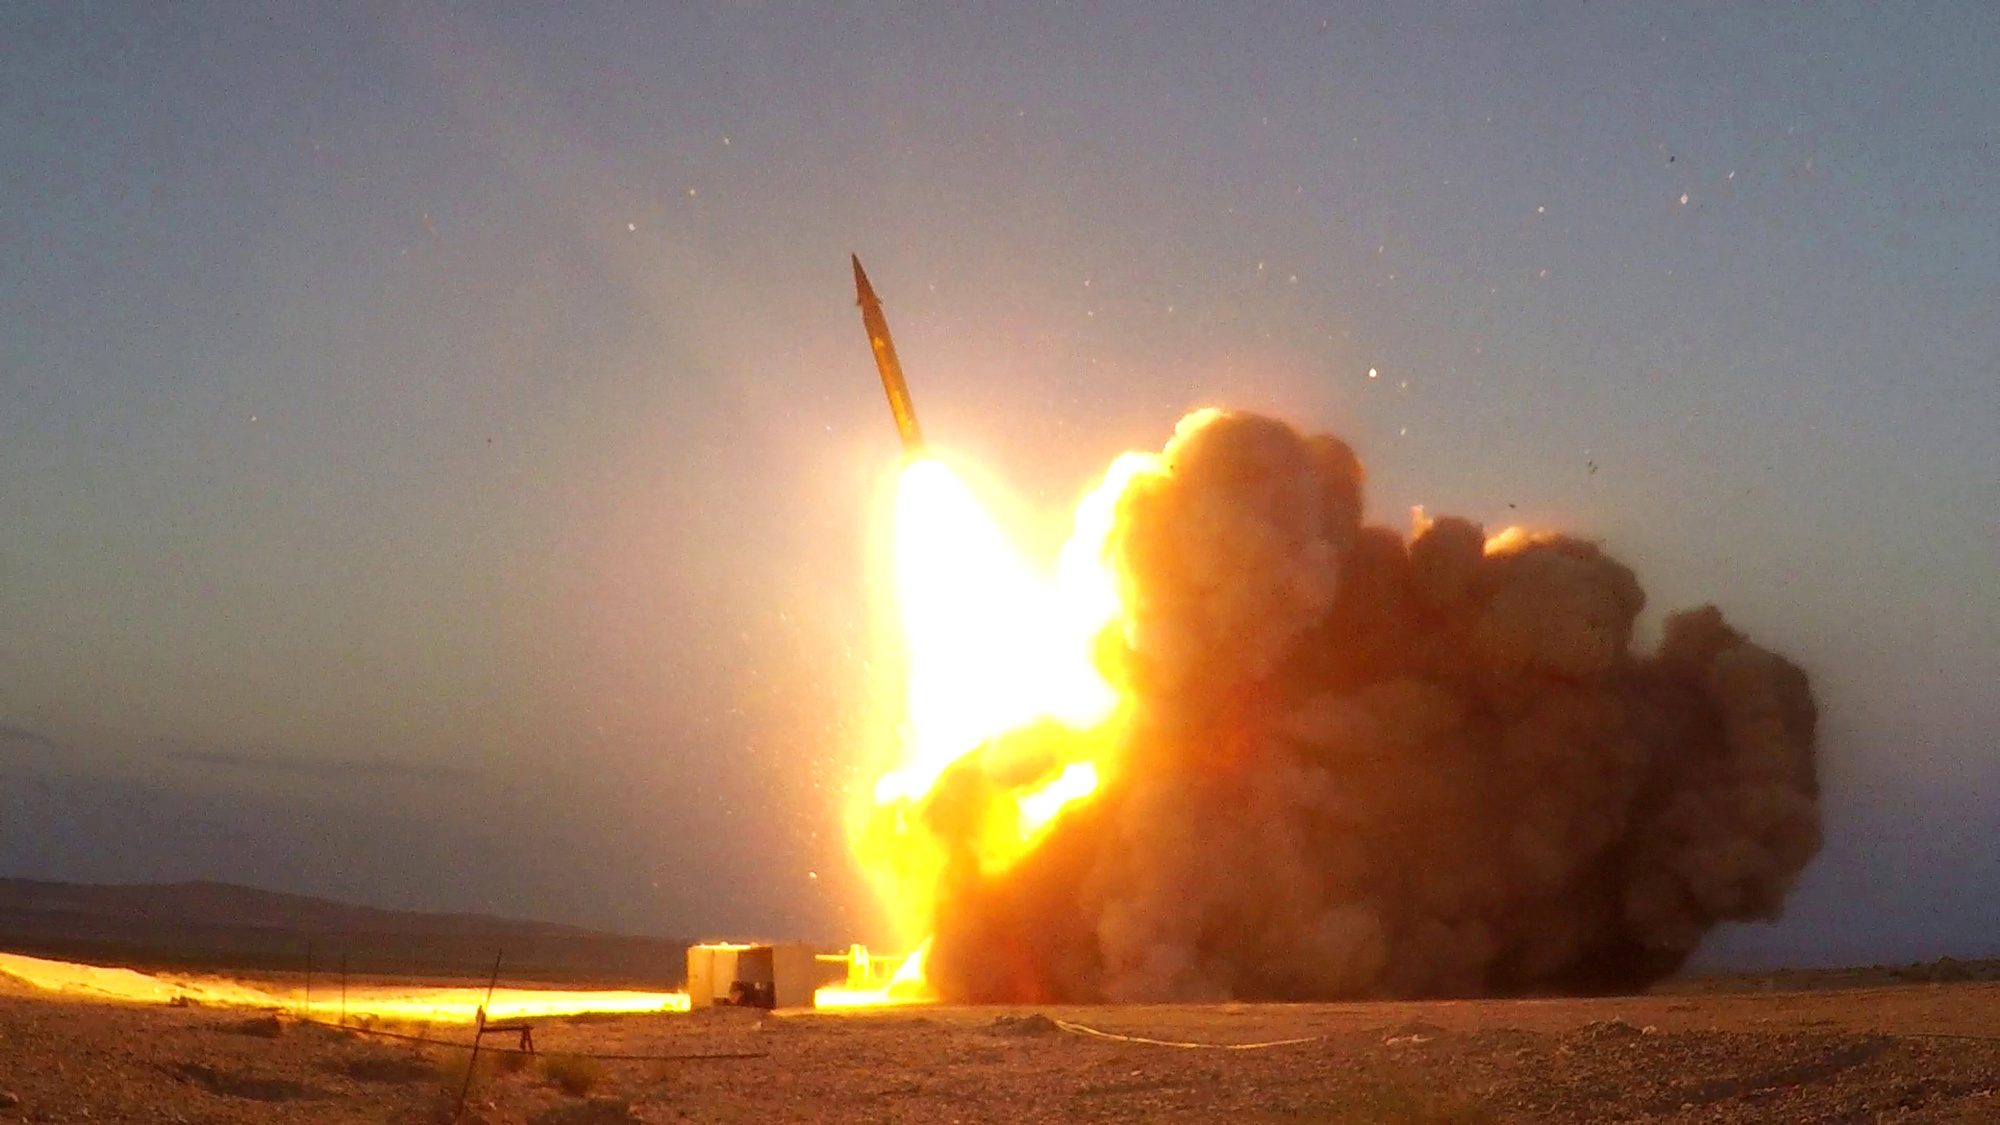 A missile unveiled by Iran is launched in an unknown location in Iran in this picture received by Reuters on August 20, 2020. WANA (West Asia News Agency) via REUTERS